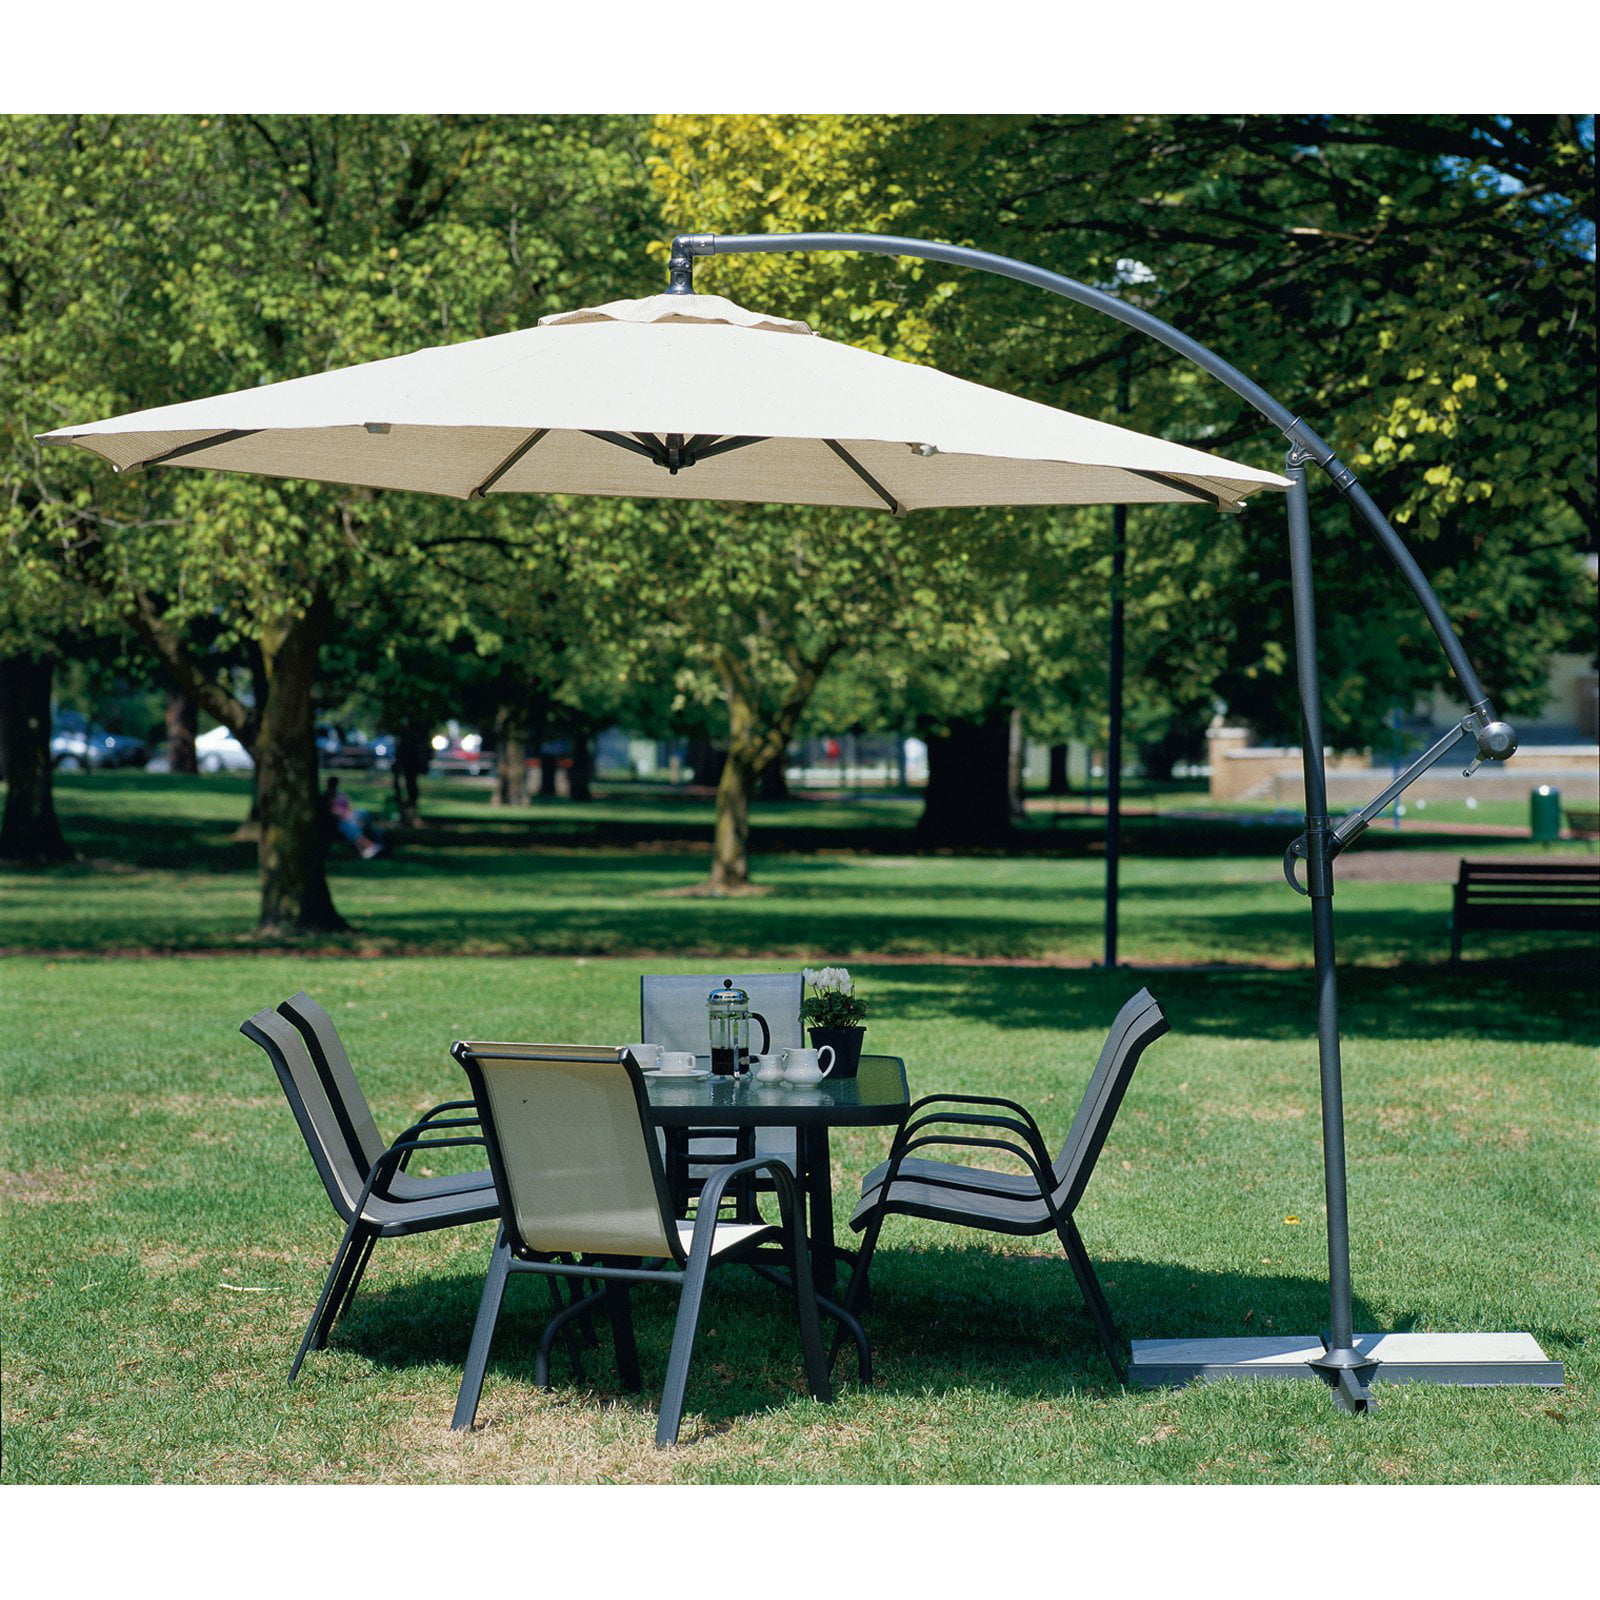 Coolaroo 10 ' Round Aluminum Cantilever Umbrella, Multiple Colors by Coolaroo/Gale Pacific USA.